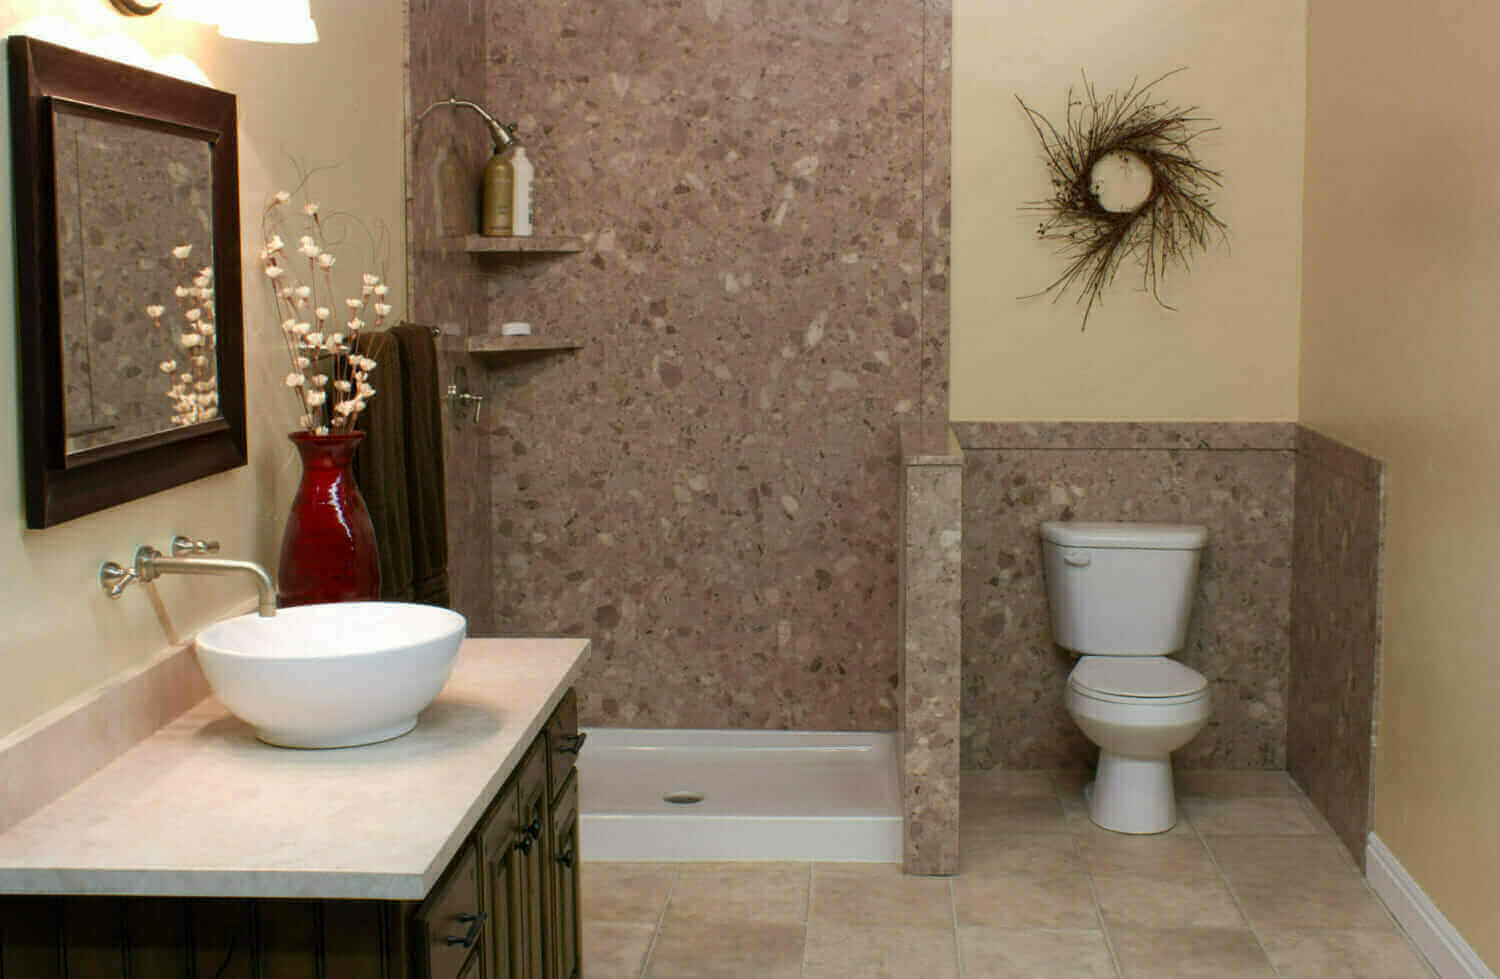 Marietta professional bathroom remodeling five star bath for Professional bathroom renovations